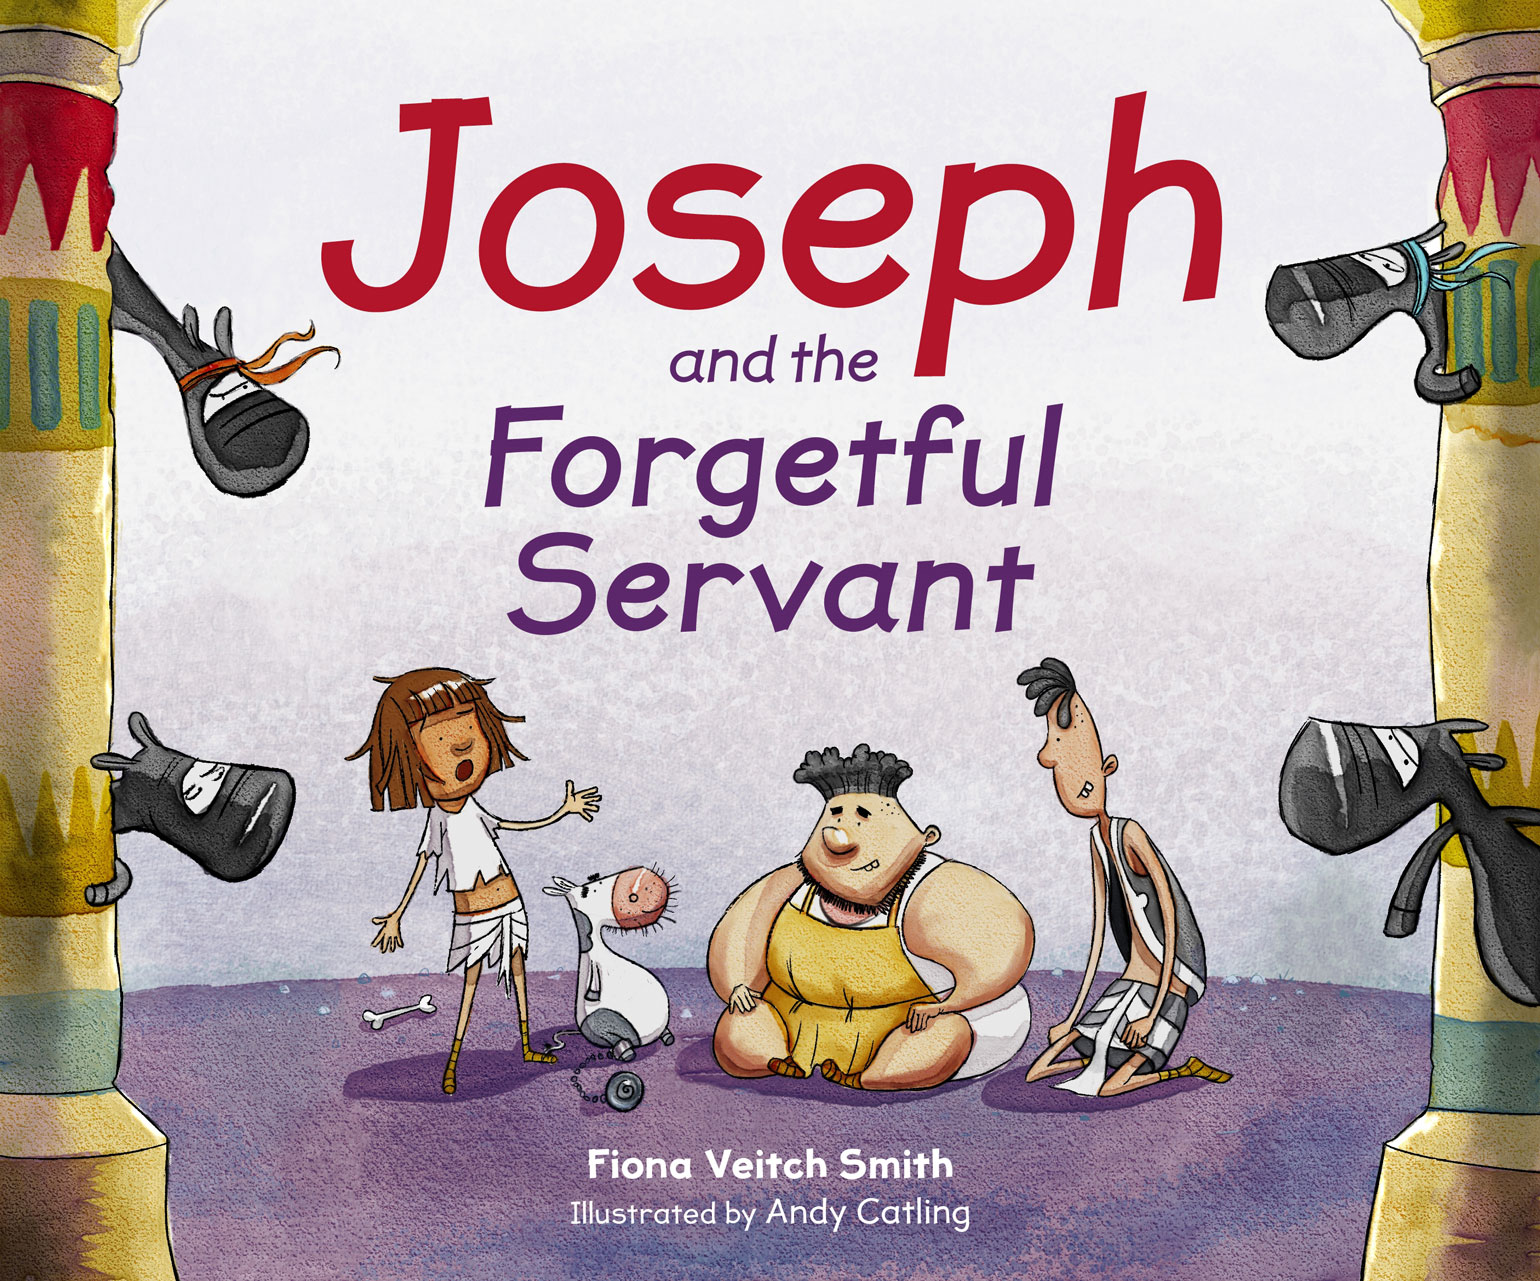 Joseph and the Forgetful Servant